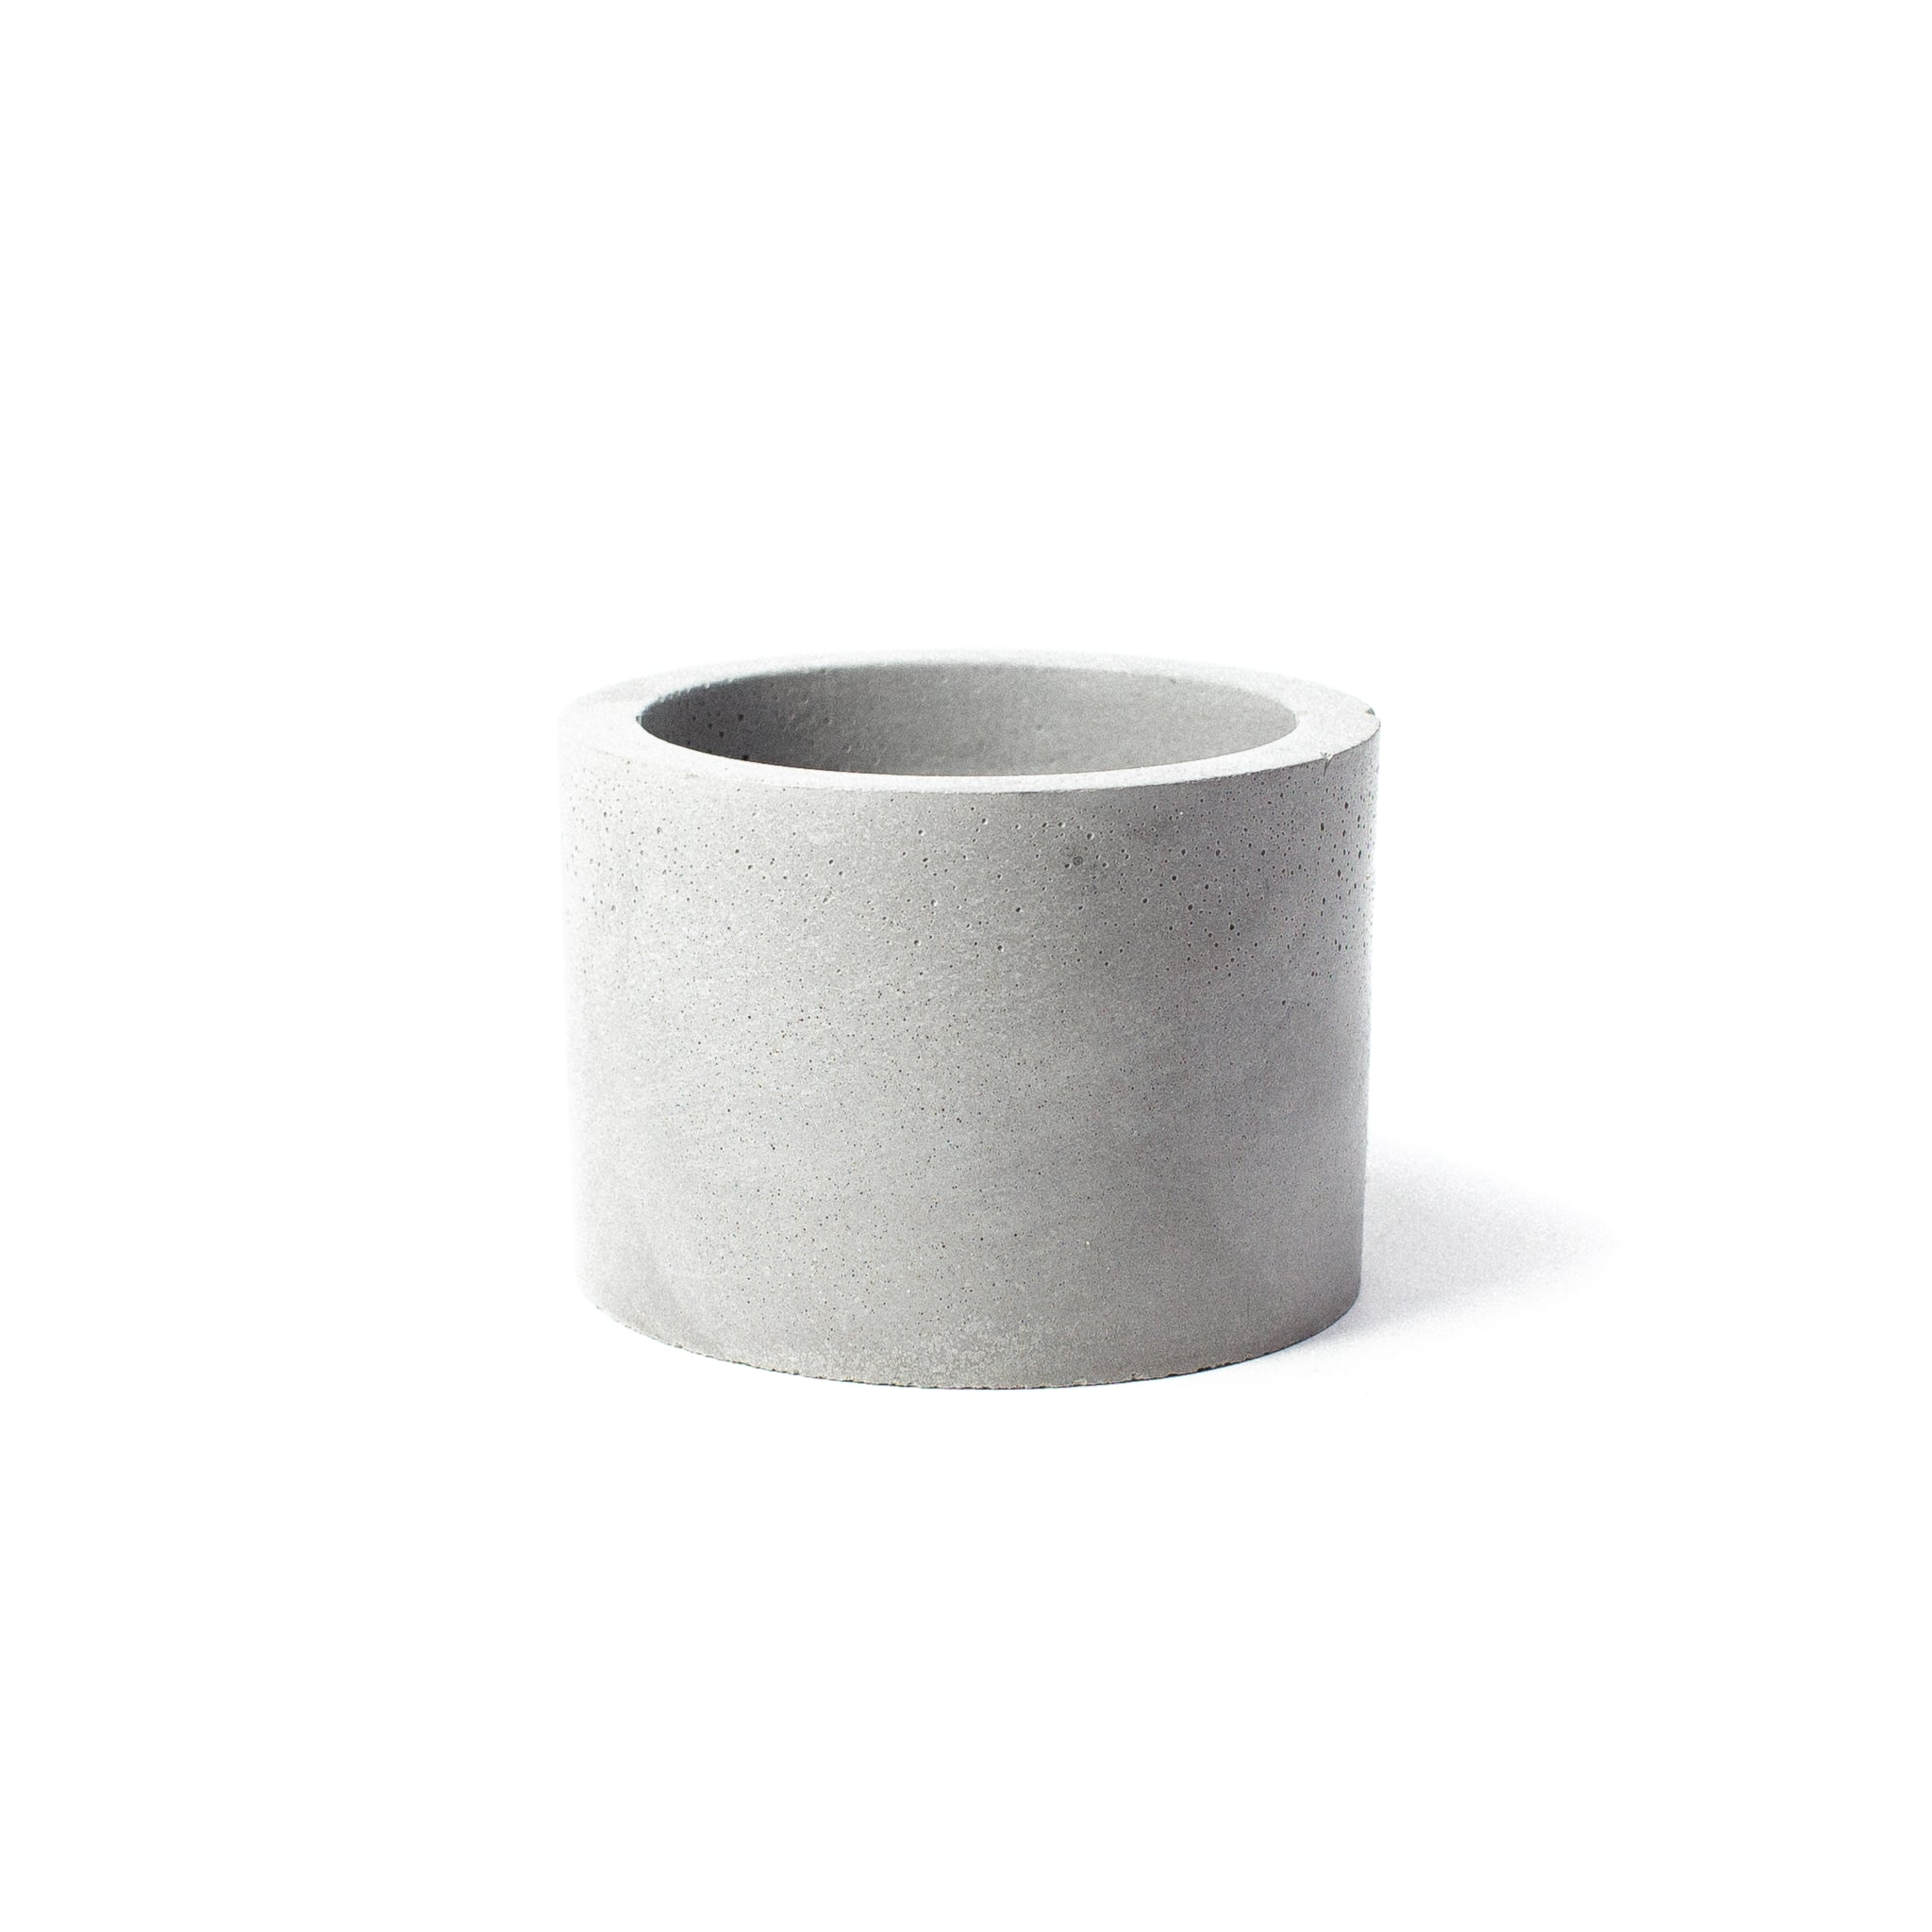 Concrete Planter: Short Cylinder